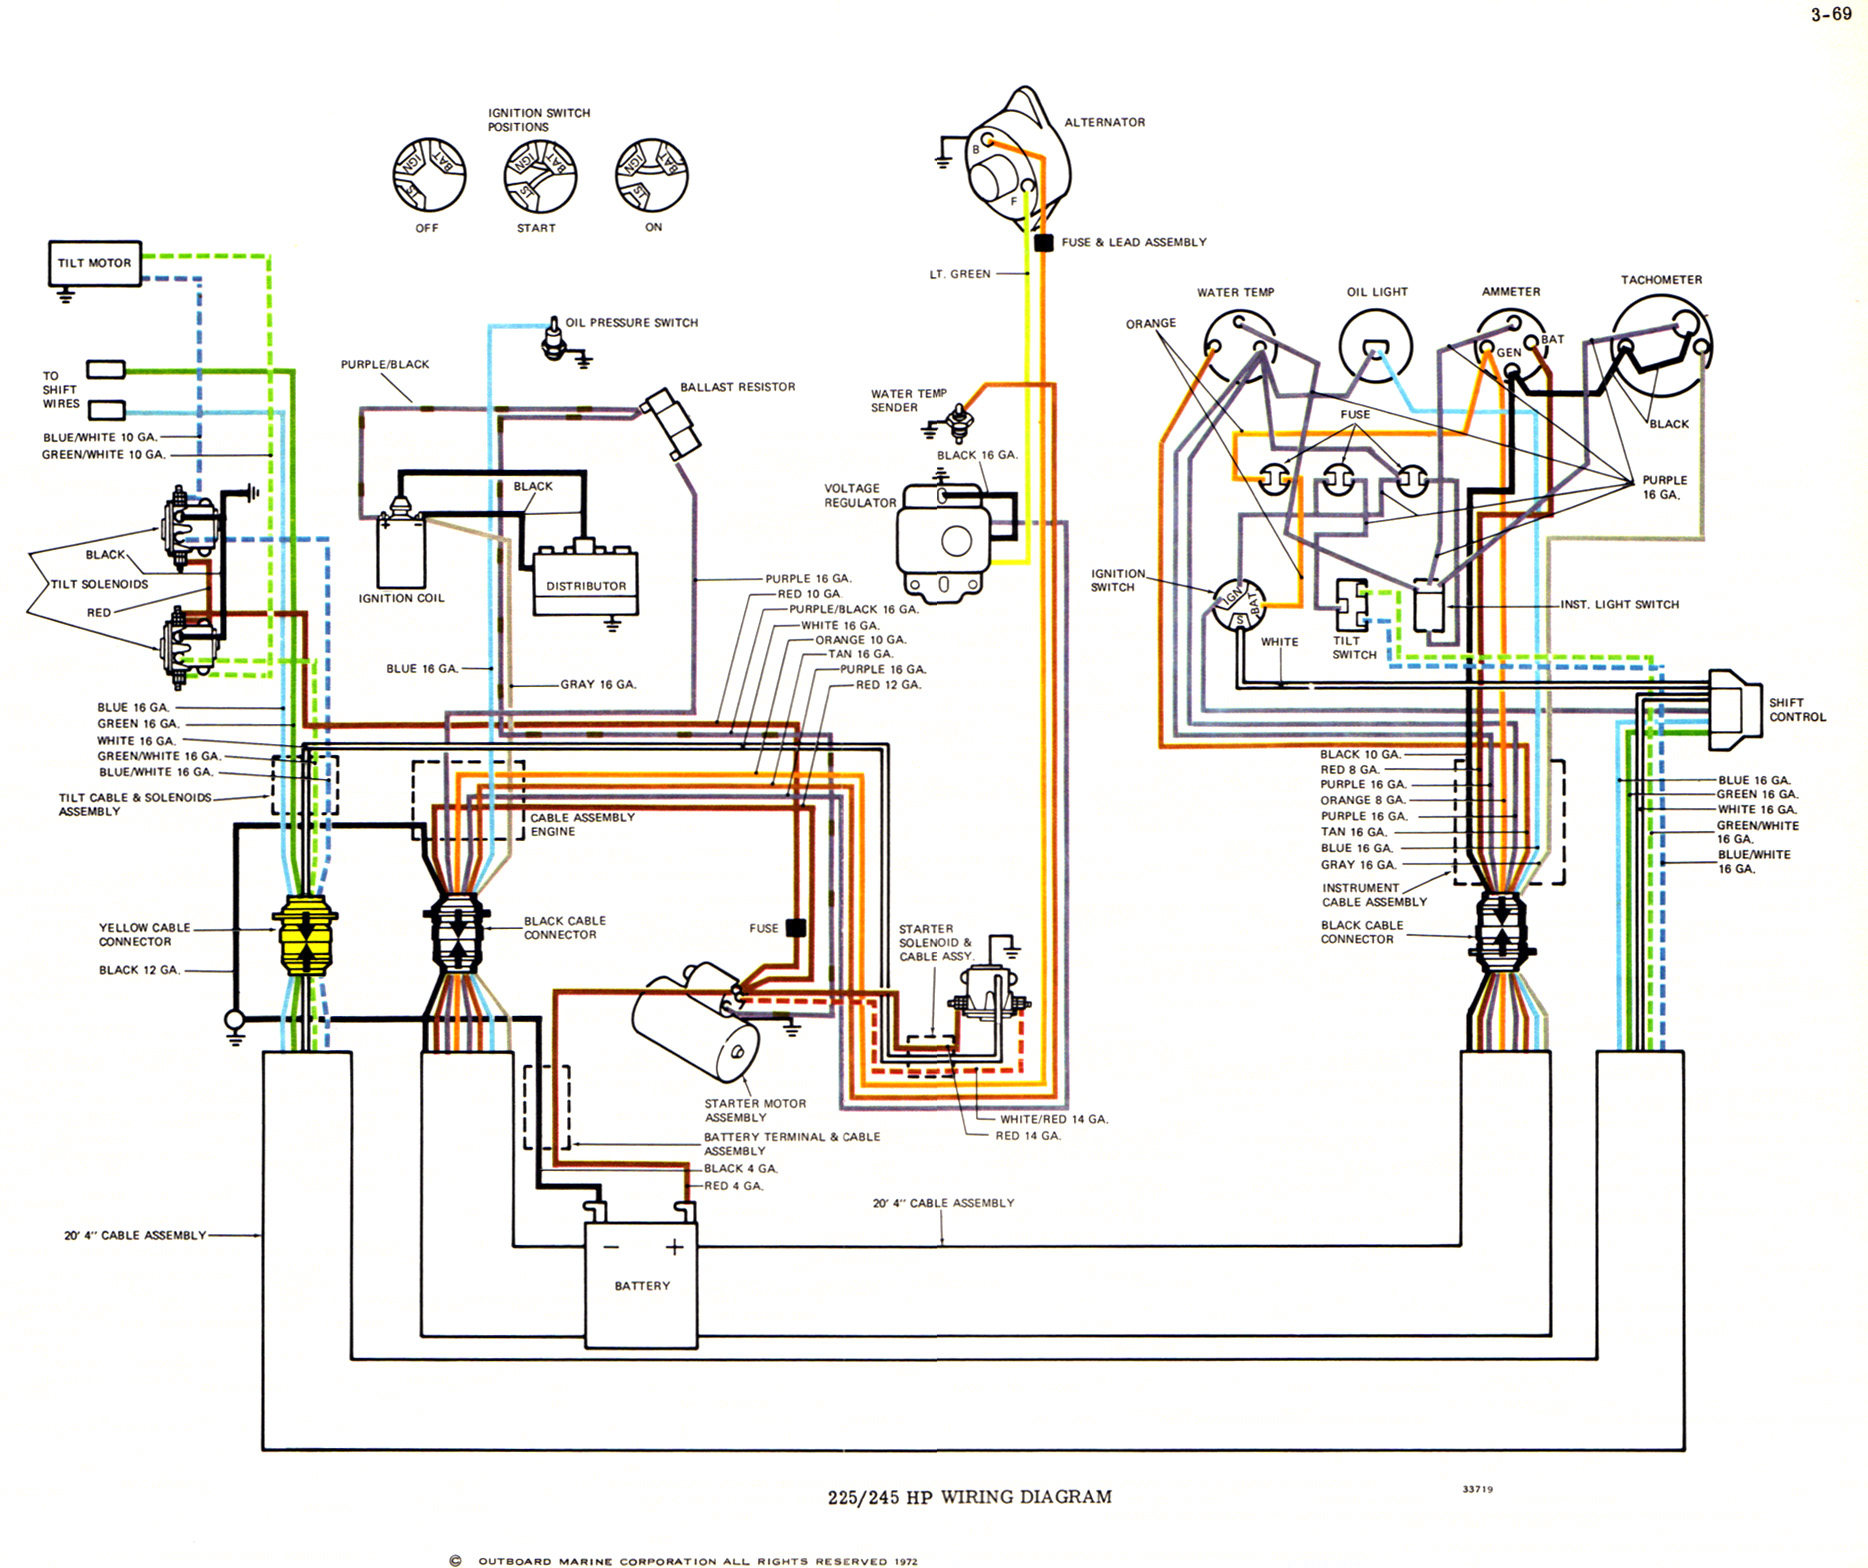 73_OMC_V8_all_big omc wiring diagram basic boat wiring schematic \u2022 wiring diagrams boat trim gauge wiring diagram at suagrazia.org